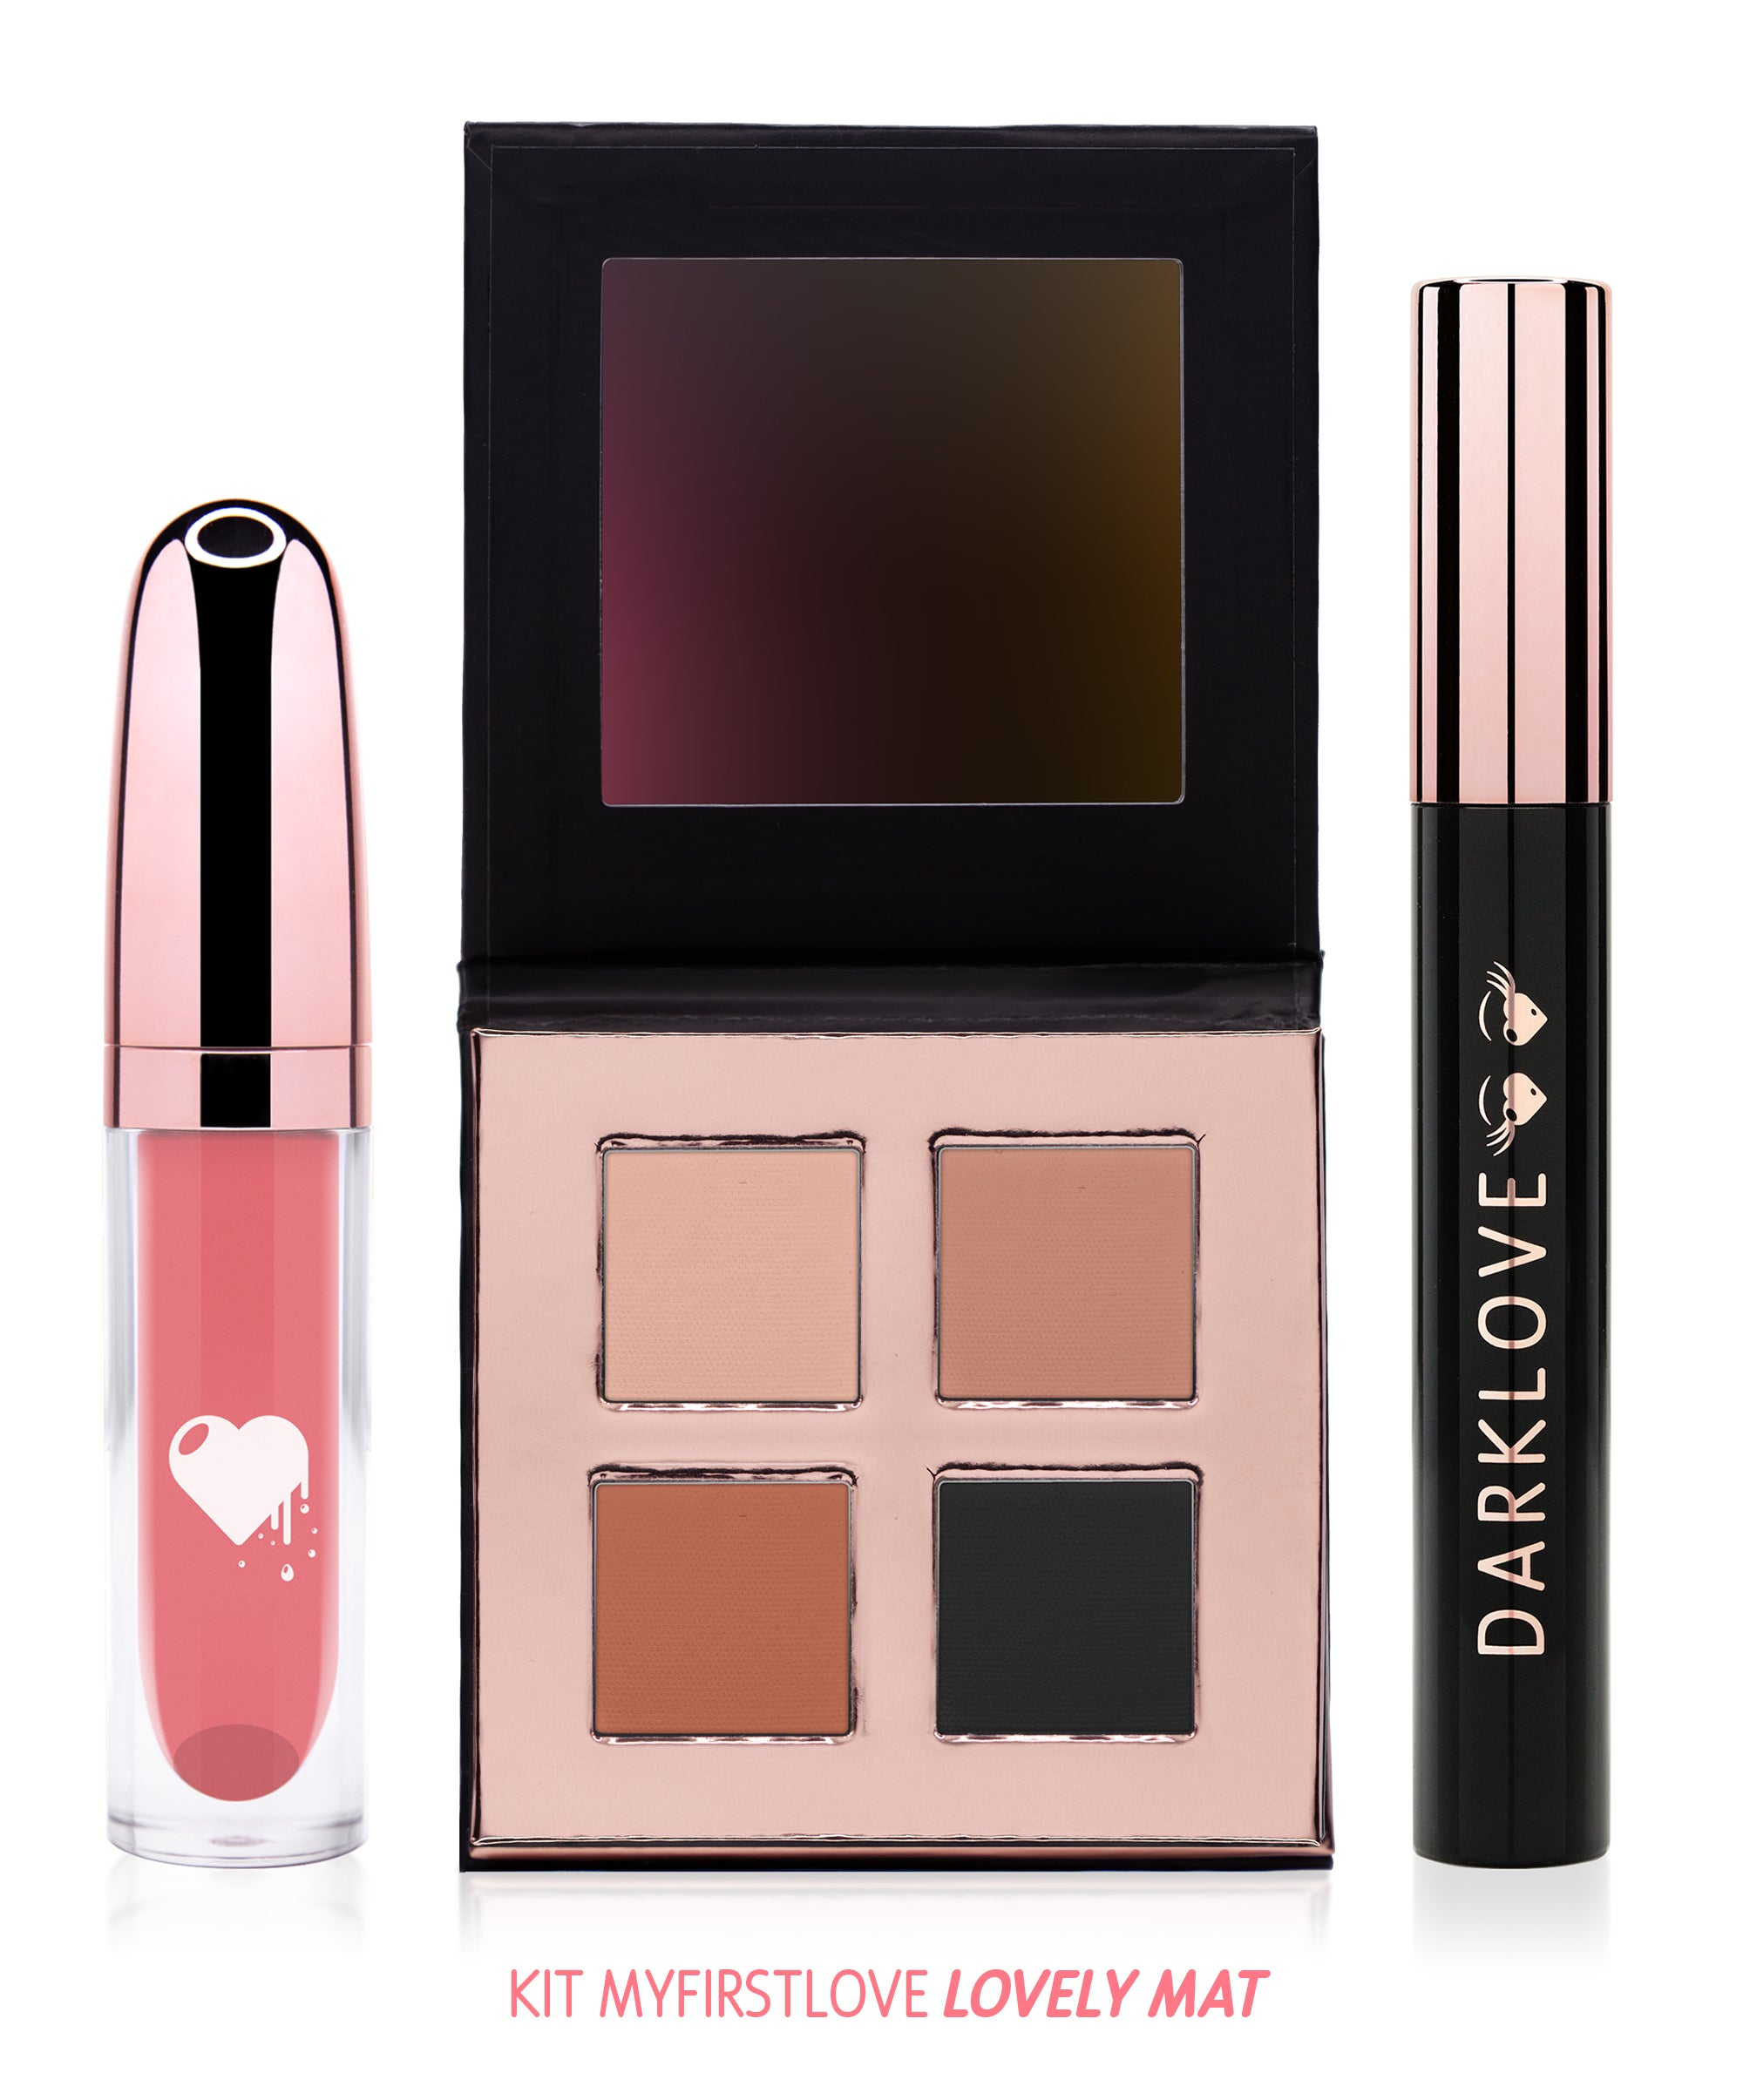 cliomakeup kit myfirstlove lovely mat